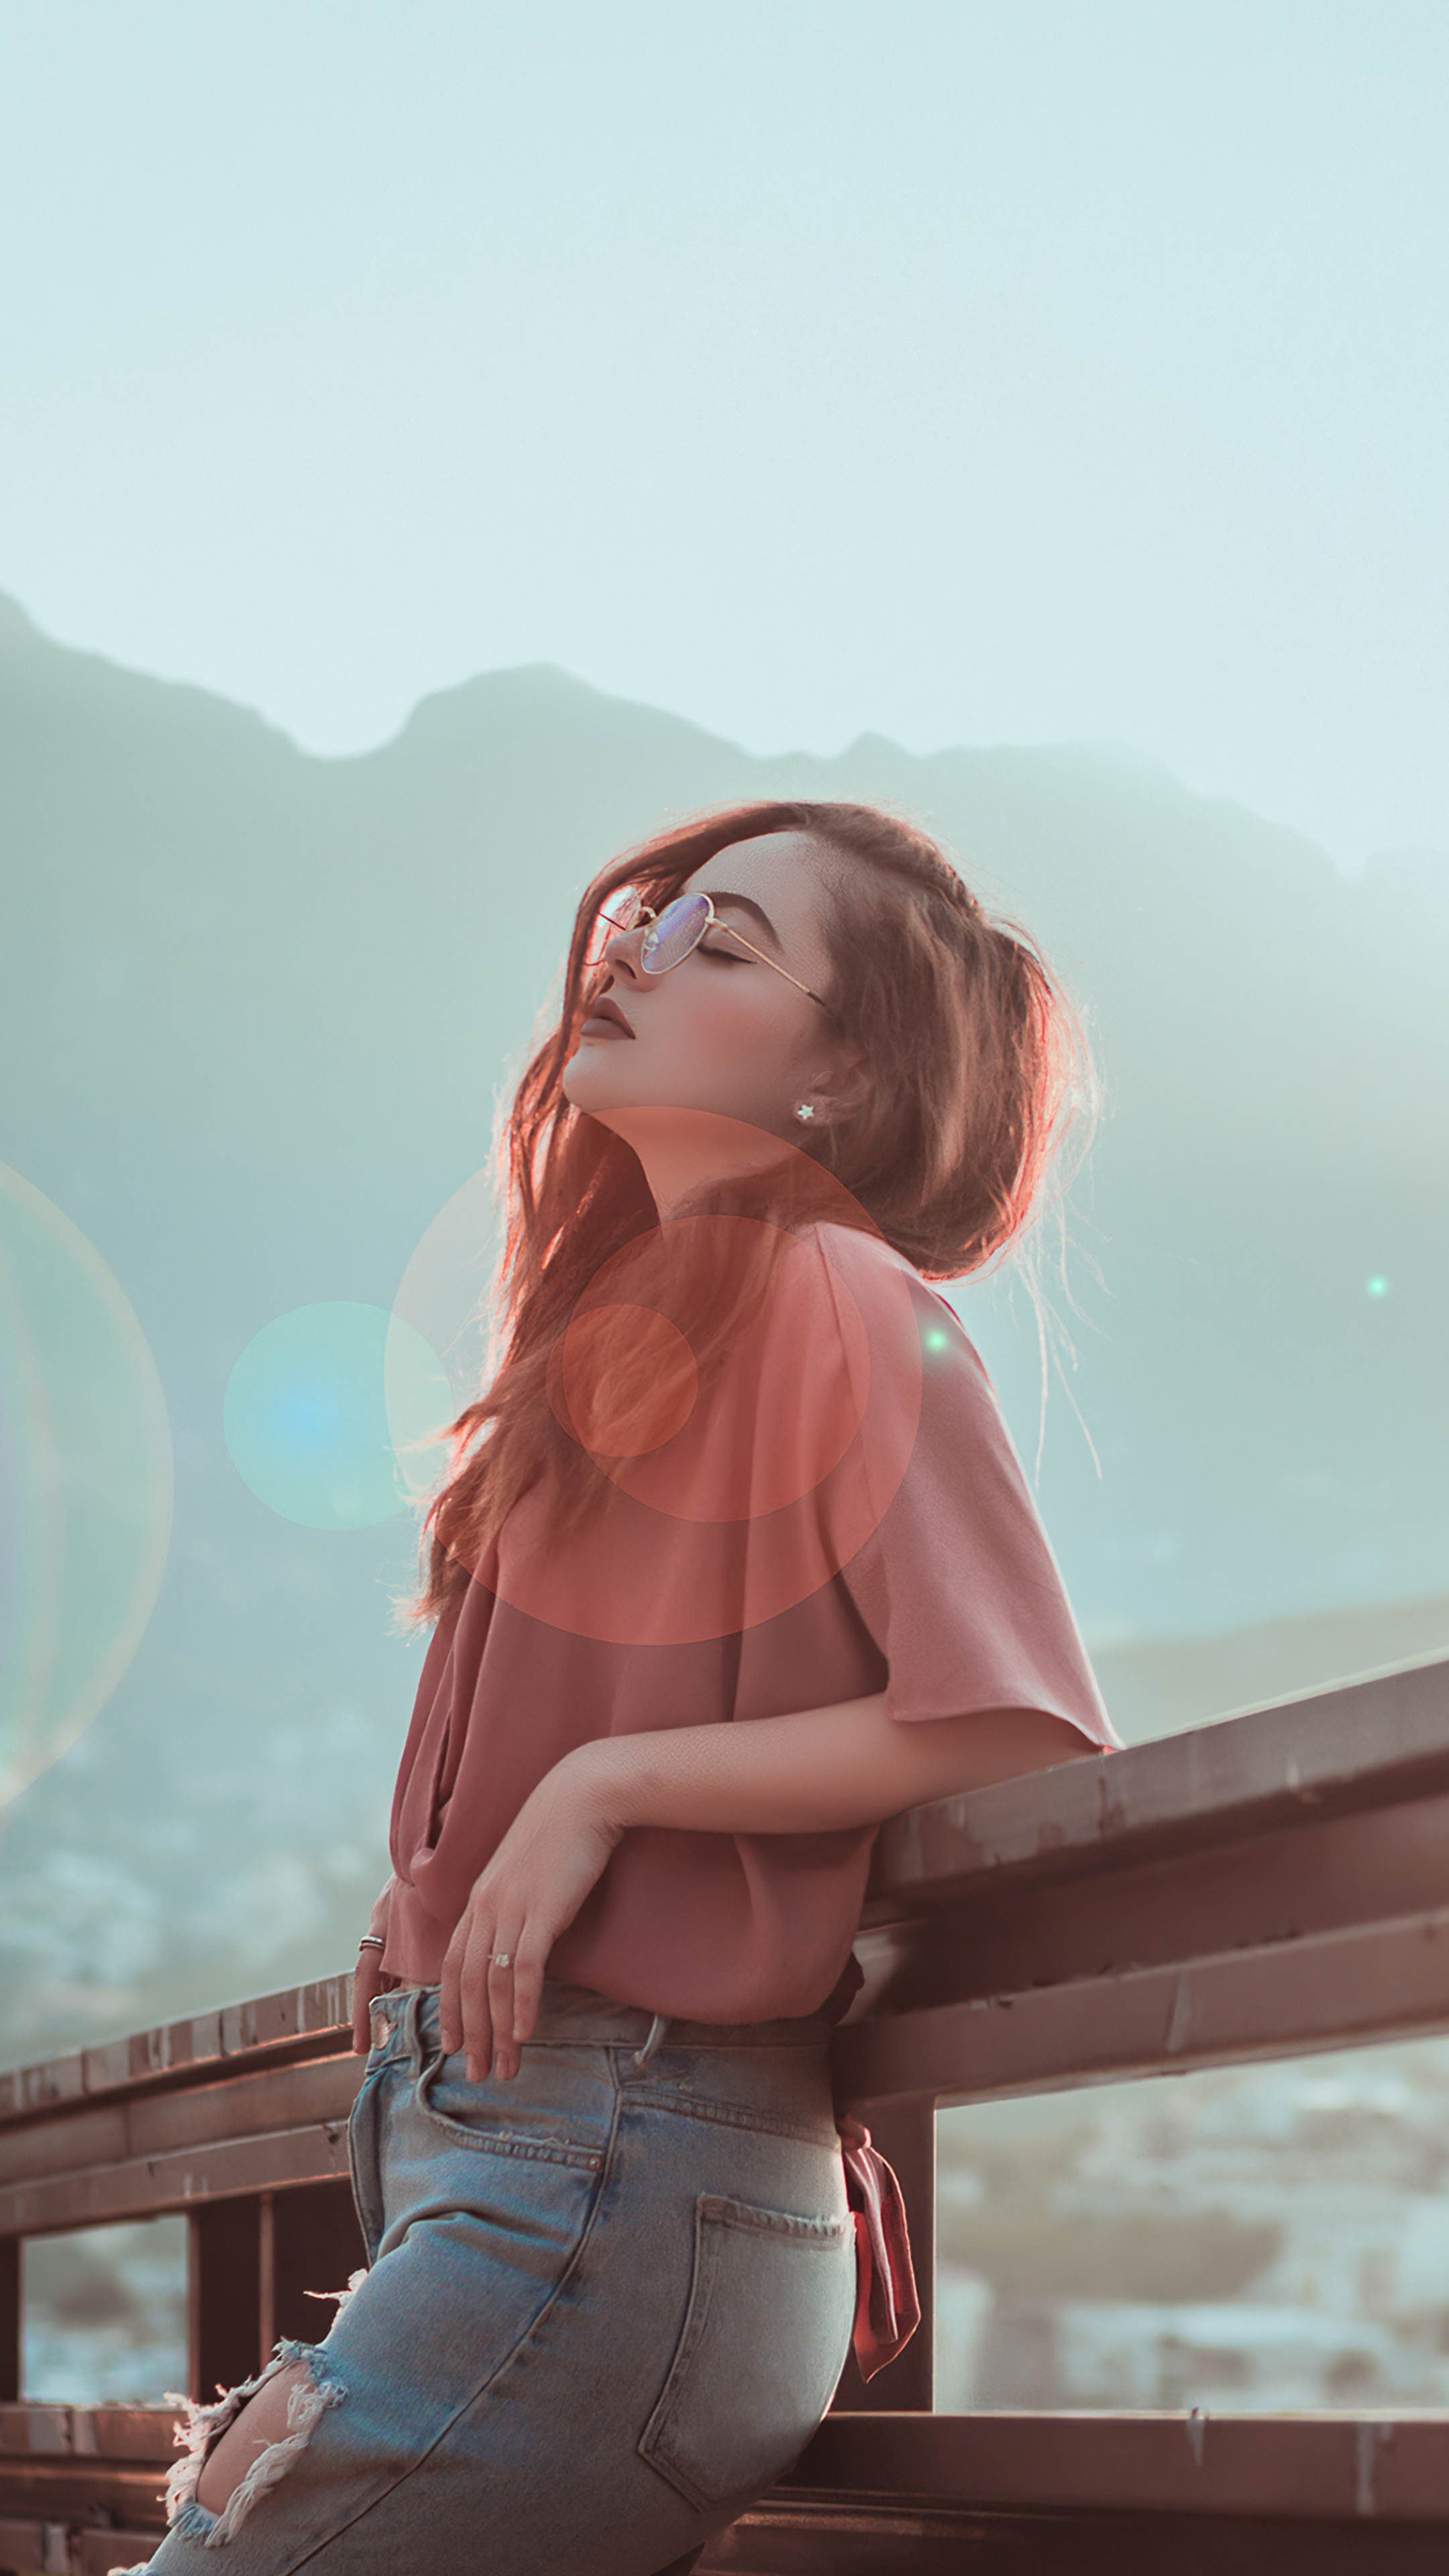 2160x3840 Women Blonde Sitting On Roof Tops 4k Sony Xperia